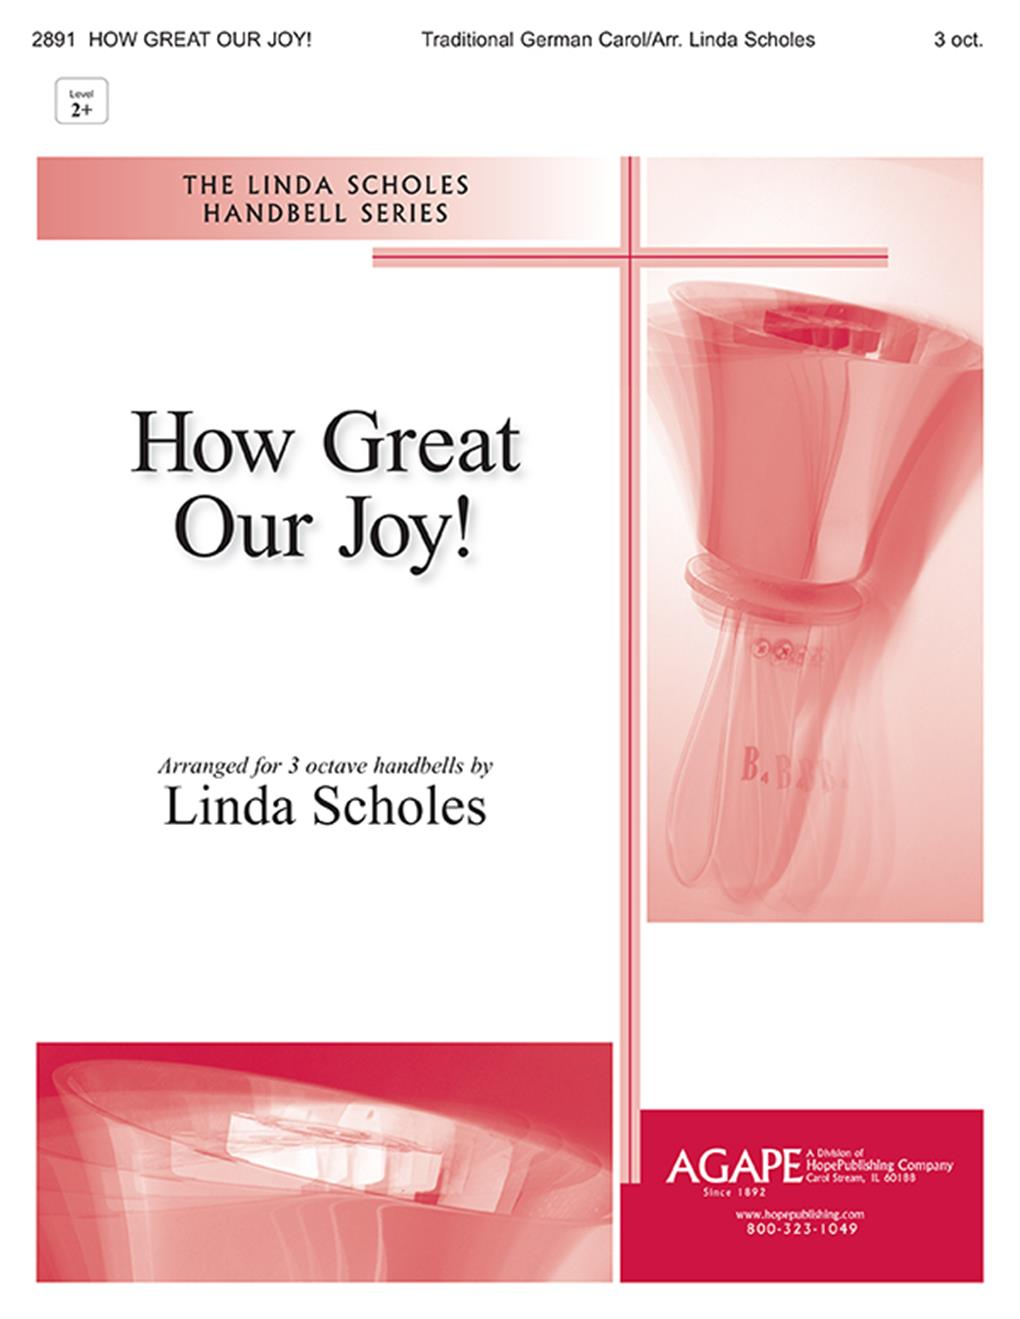 How Great Our Joy - 2-3 Oct. Cover Image